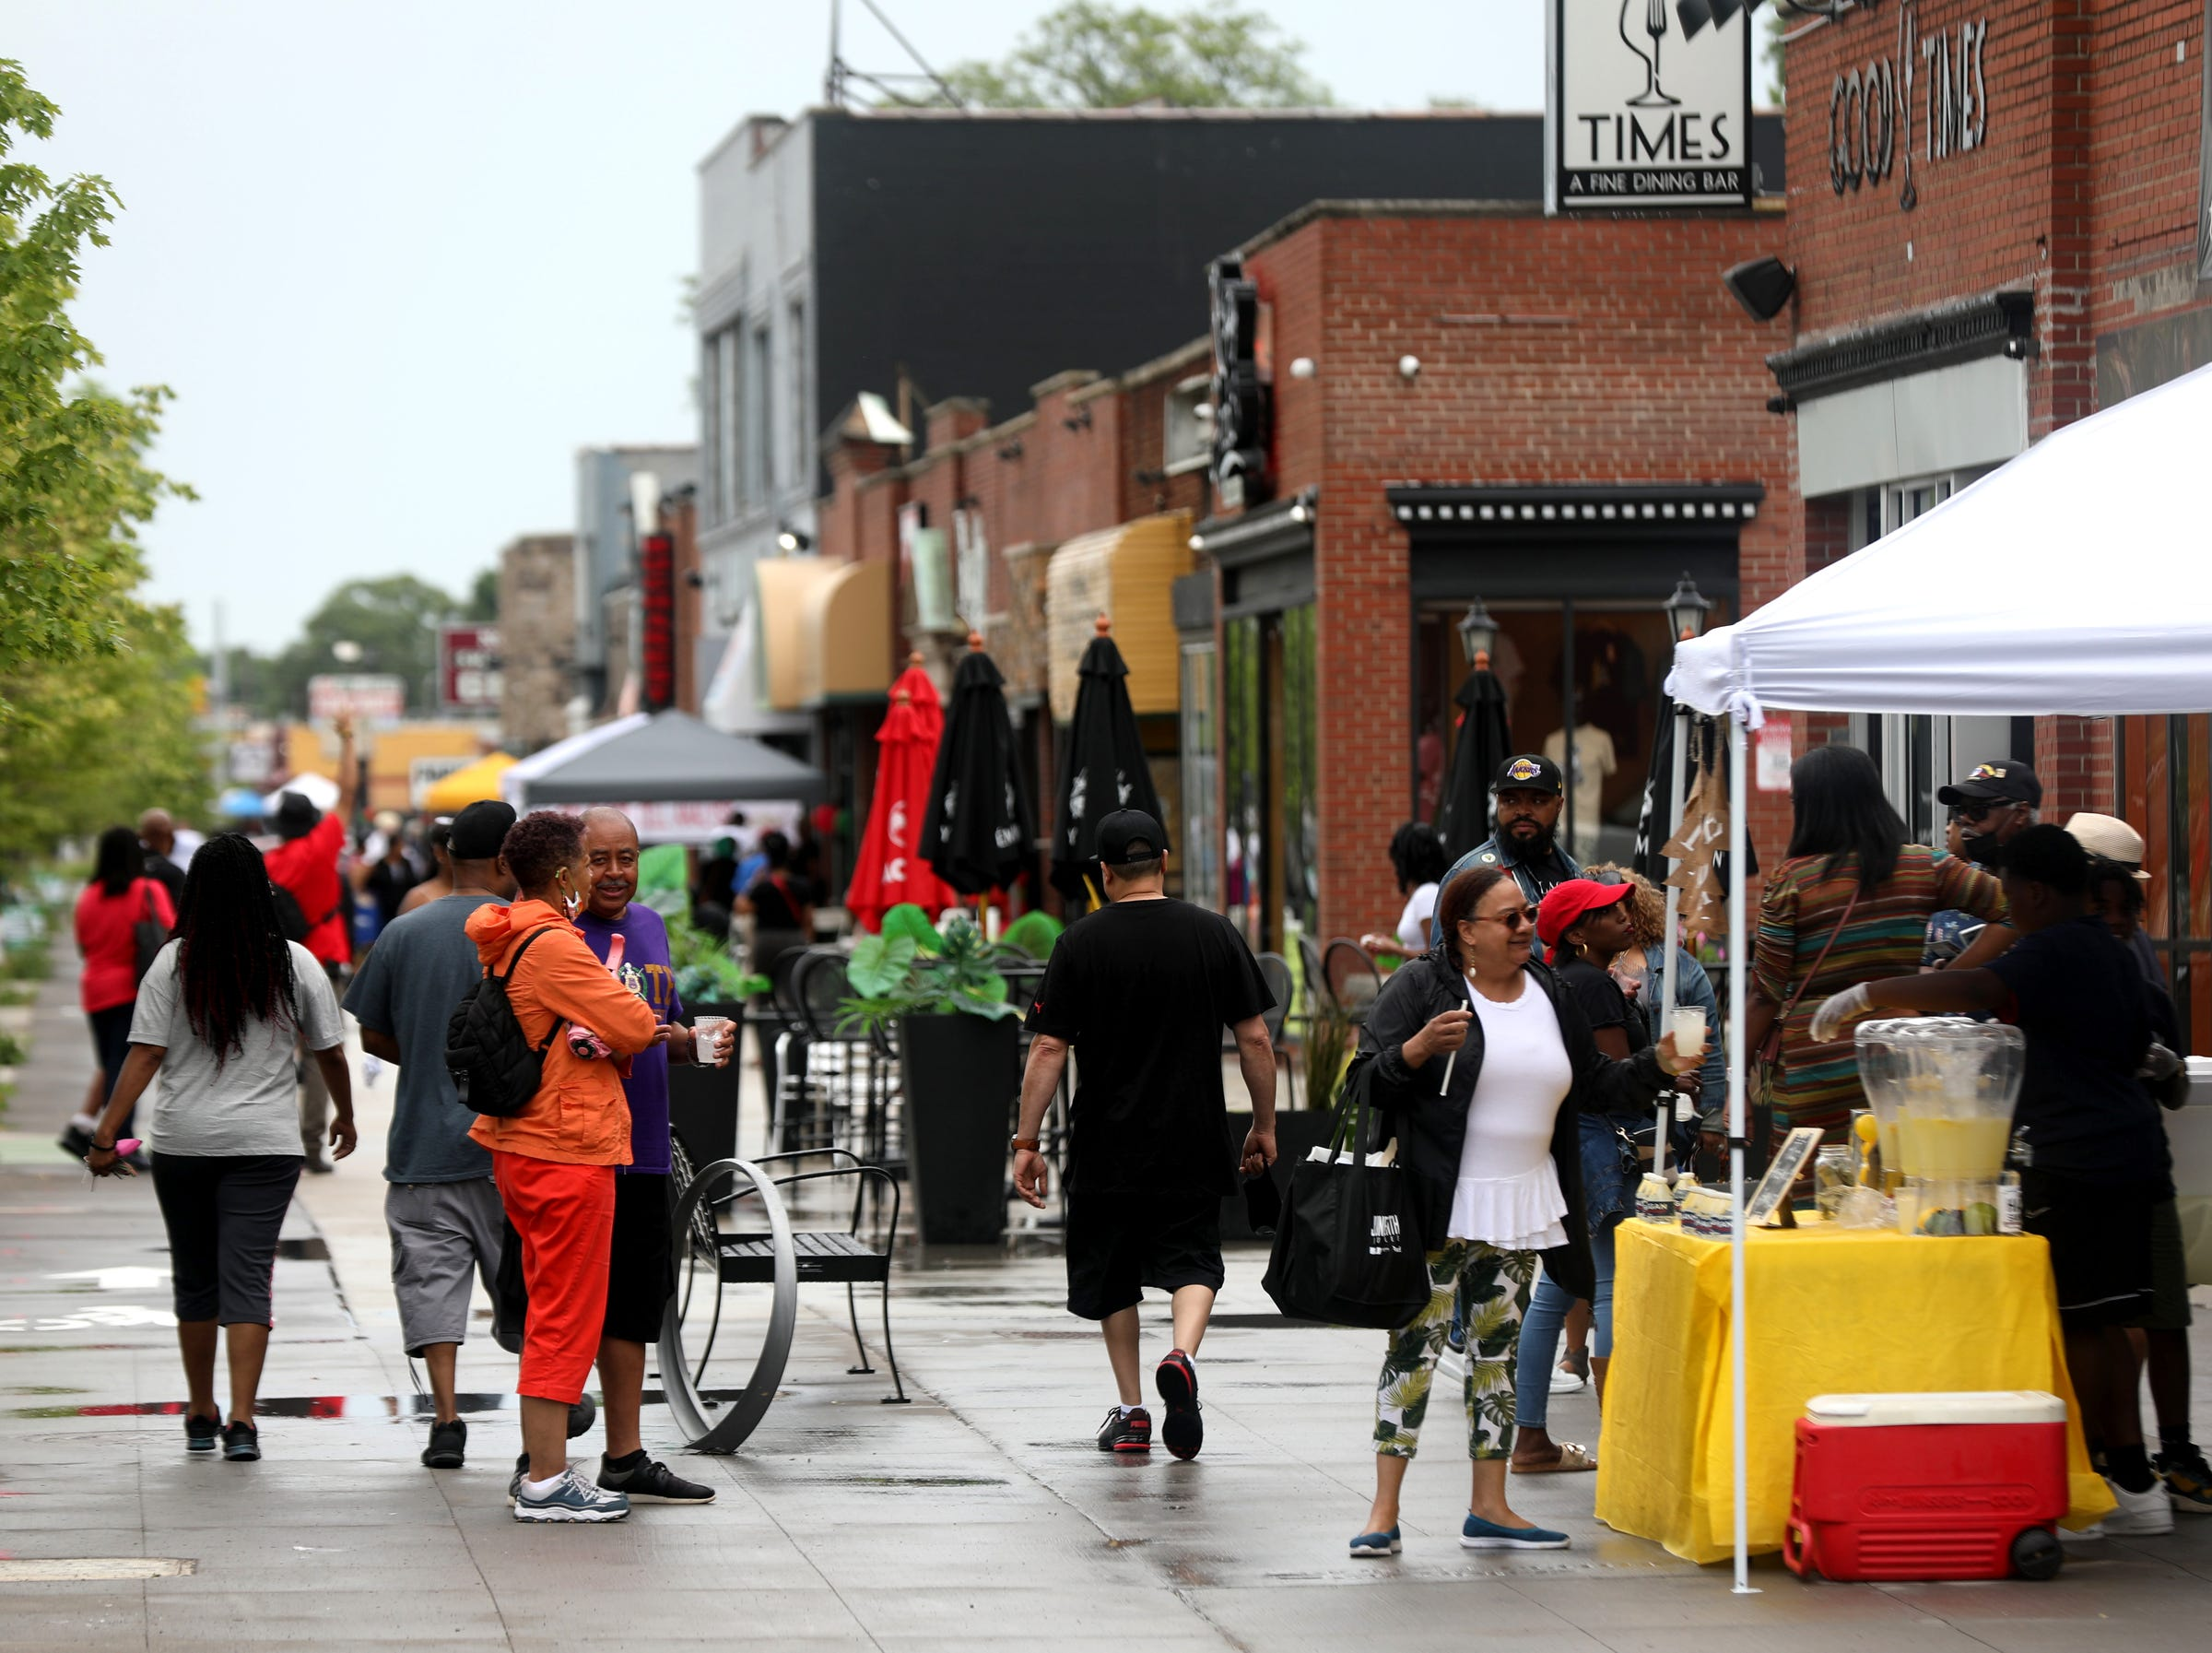 People walk and shop during Juneteenth celebrations on the Avenue of Fashion on Livernois in Detroit on June 19, 2021.